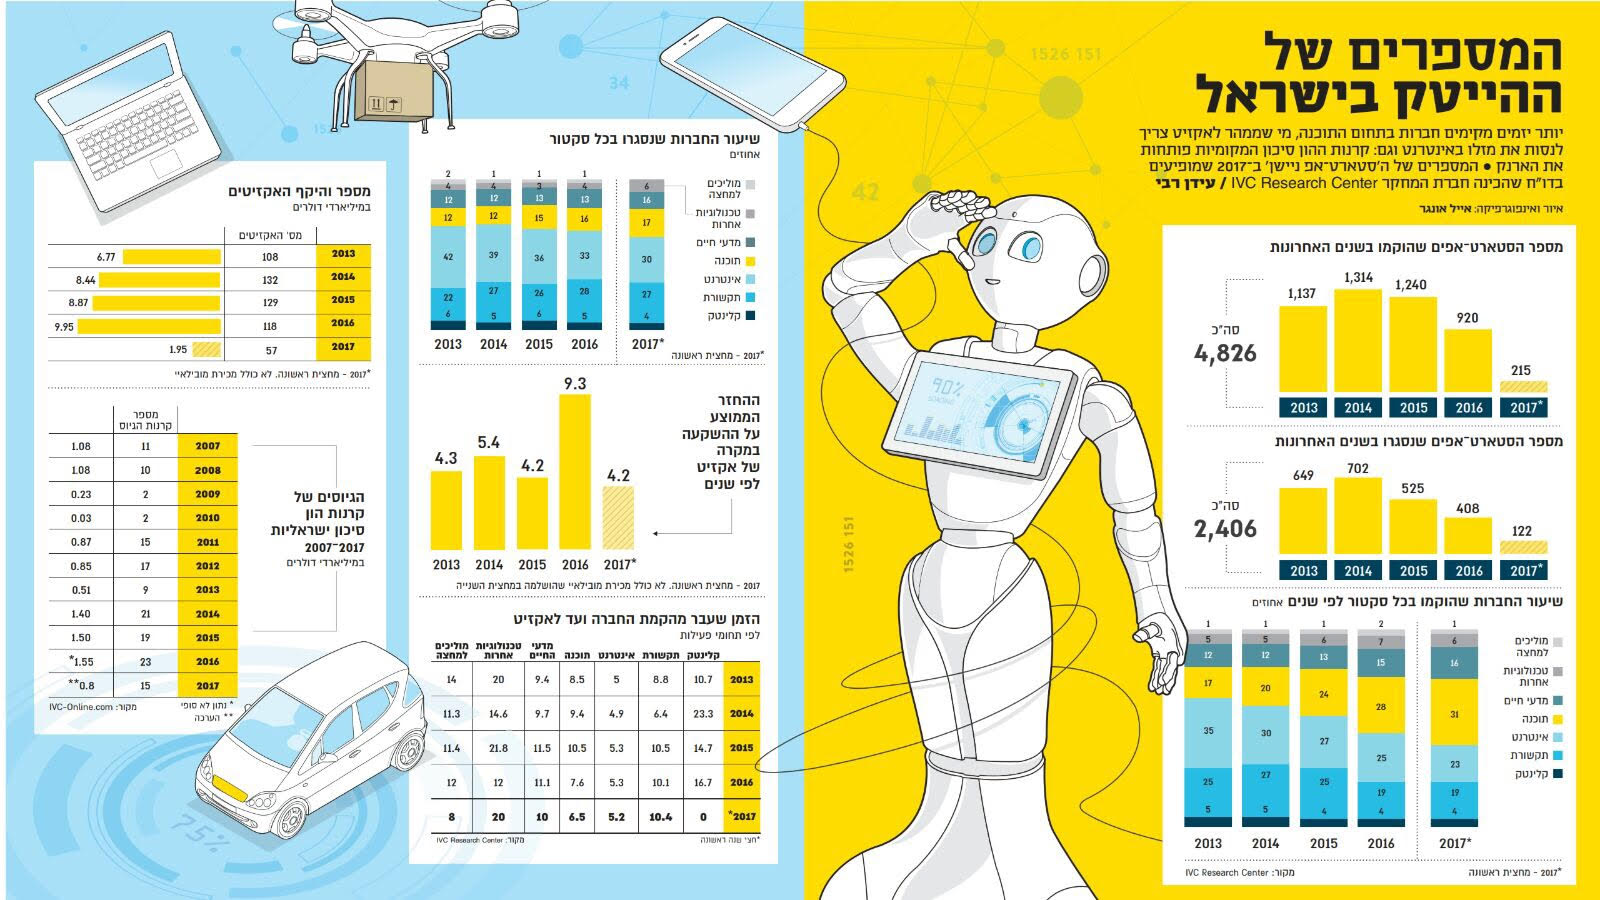 Israeli High Tech in Numbers